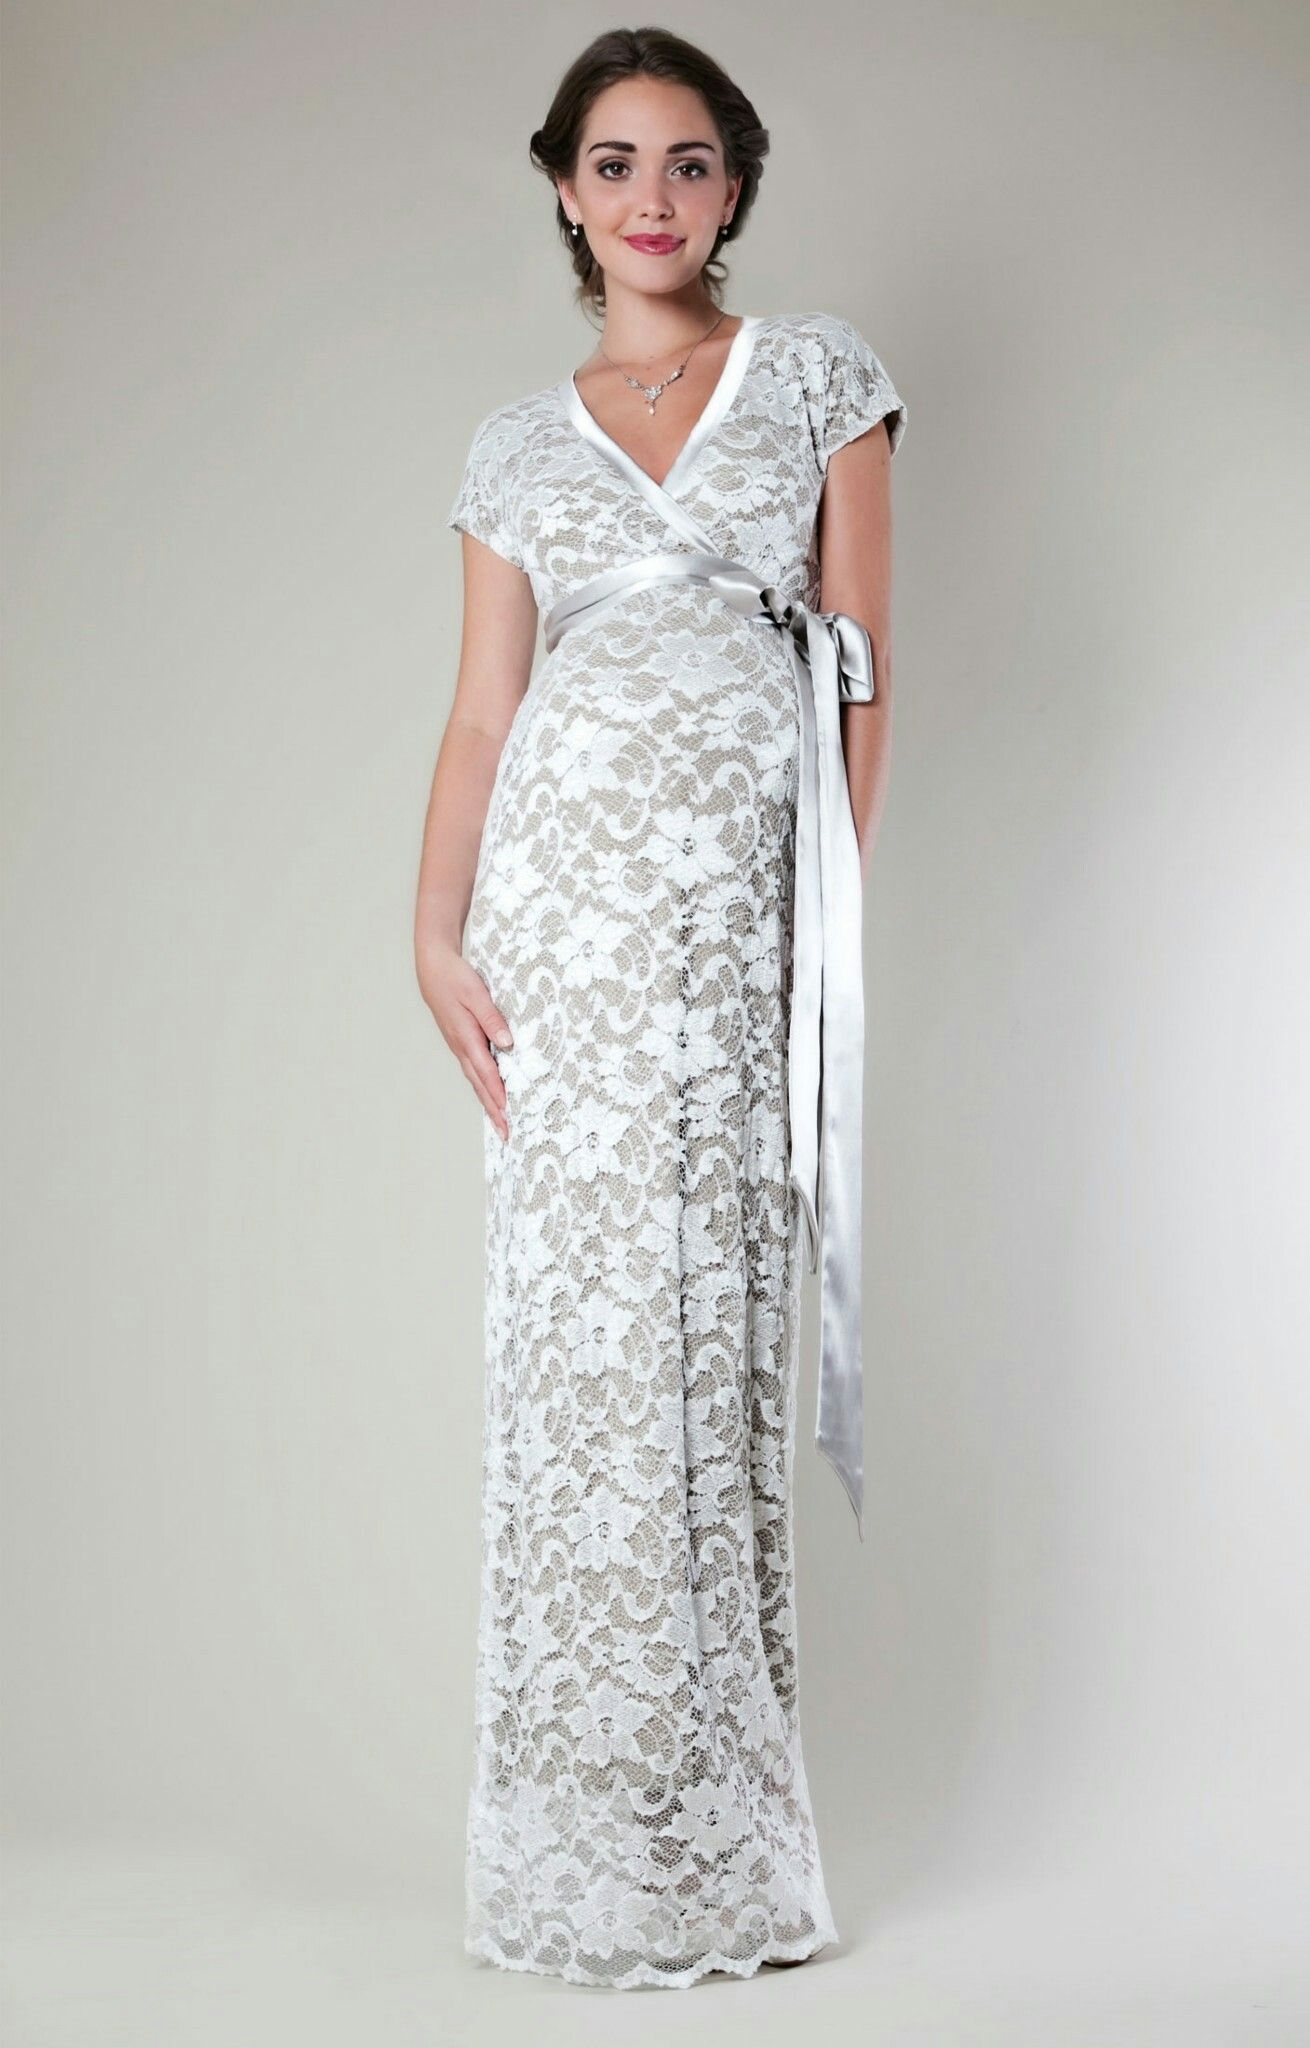 Beautiful maternity wedding dresses miami wedding planning beautiful maternity wedding dresses ombrellifo Image collections